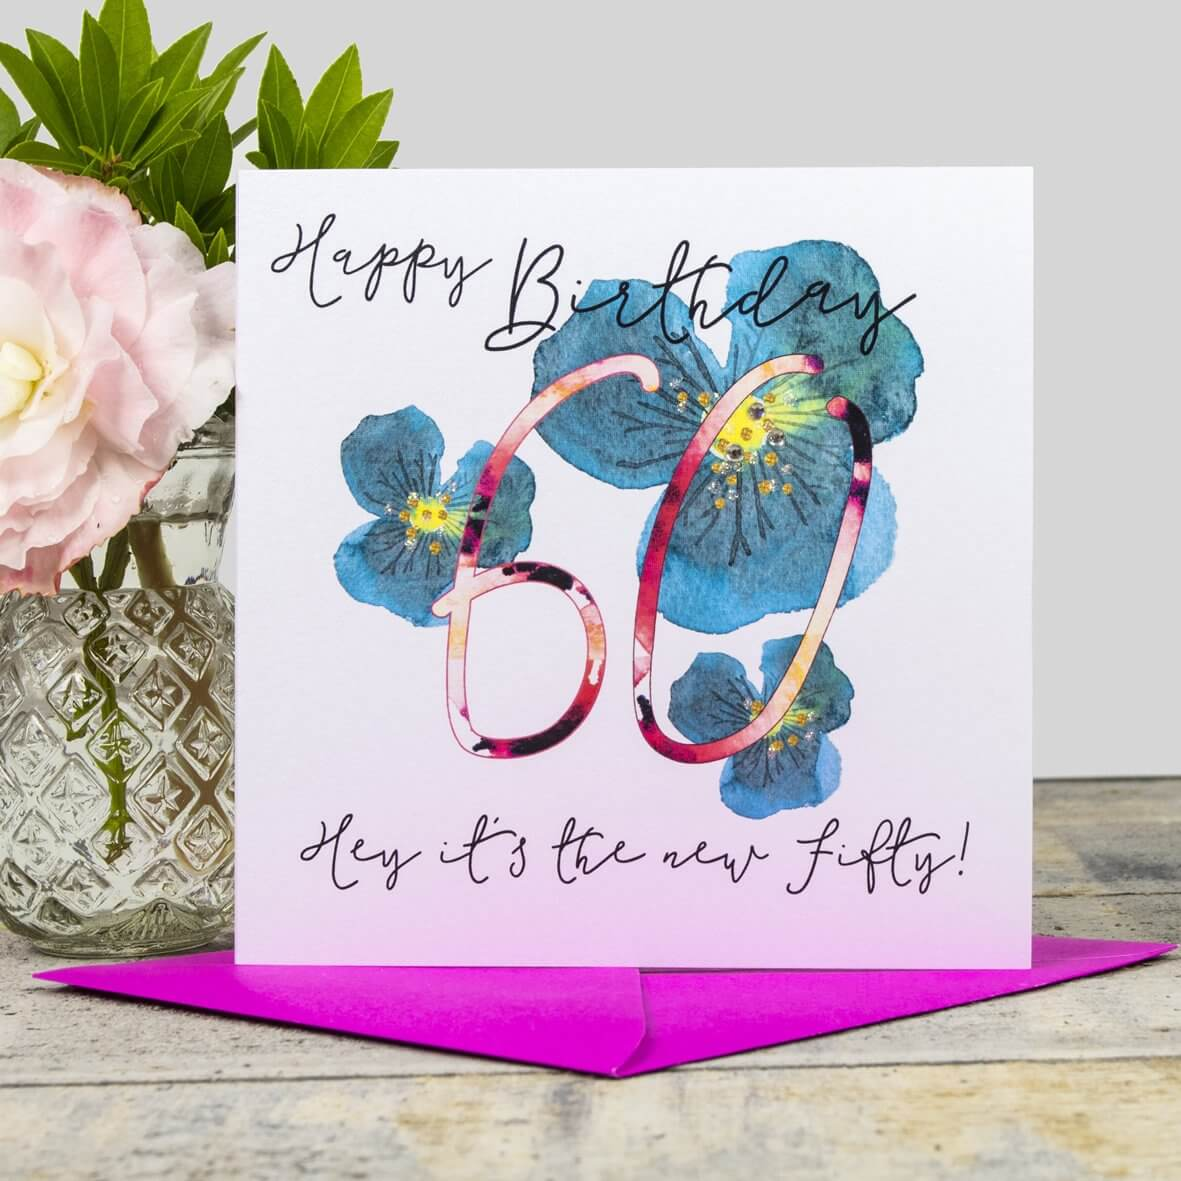 Happy 60th Birthday Card - Hey its the new fifty